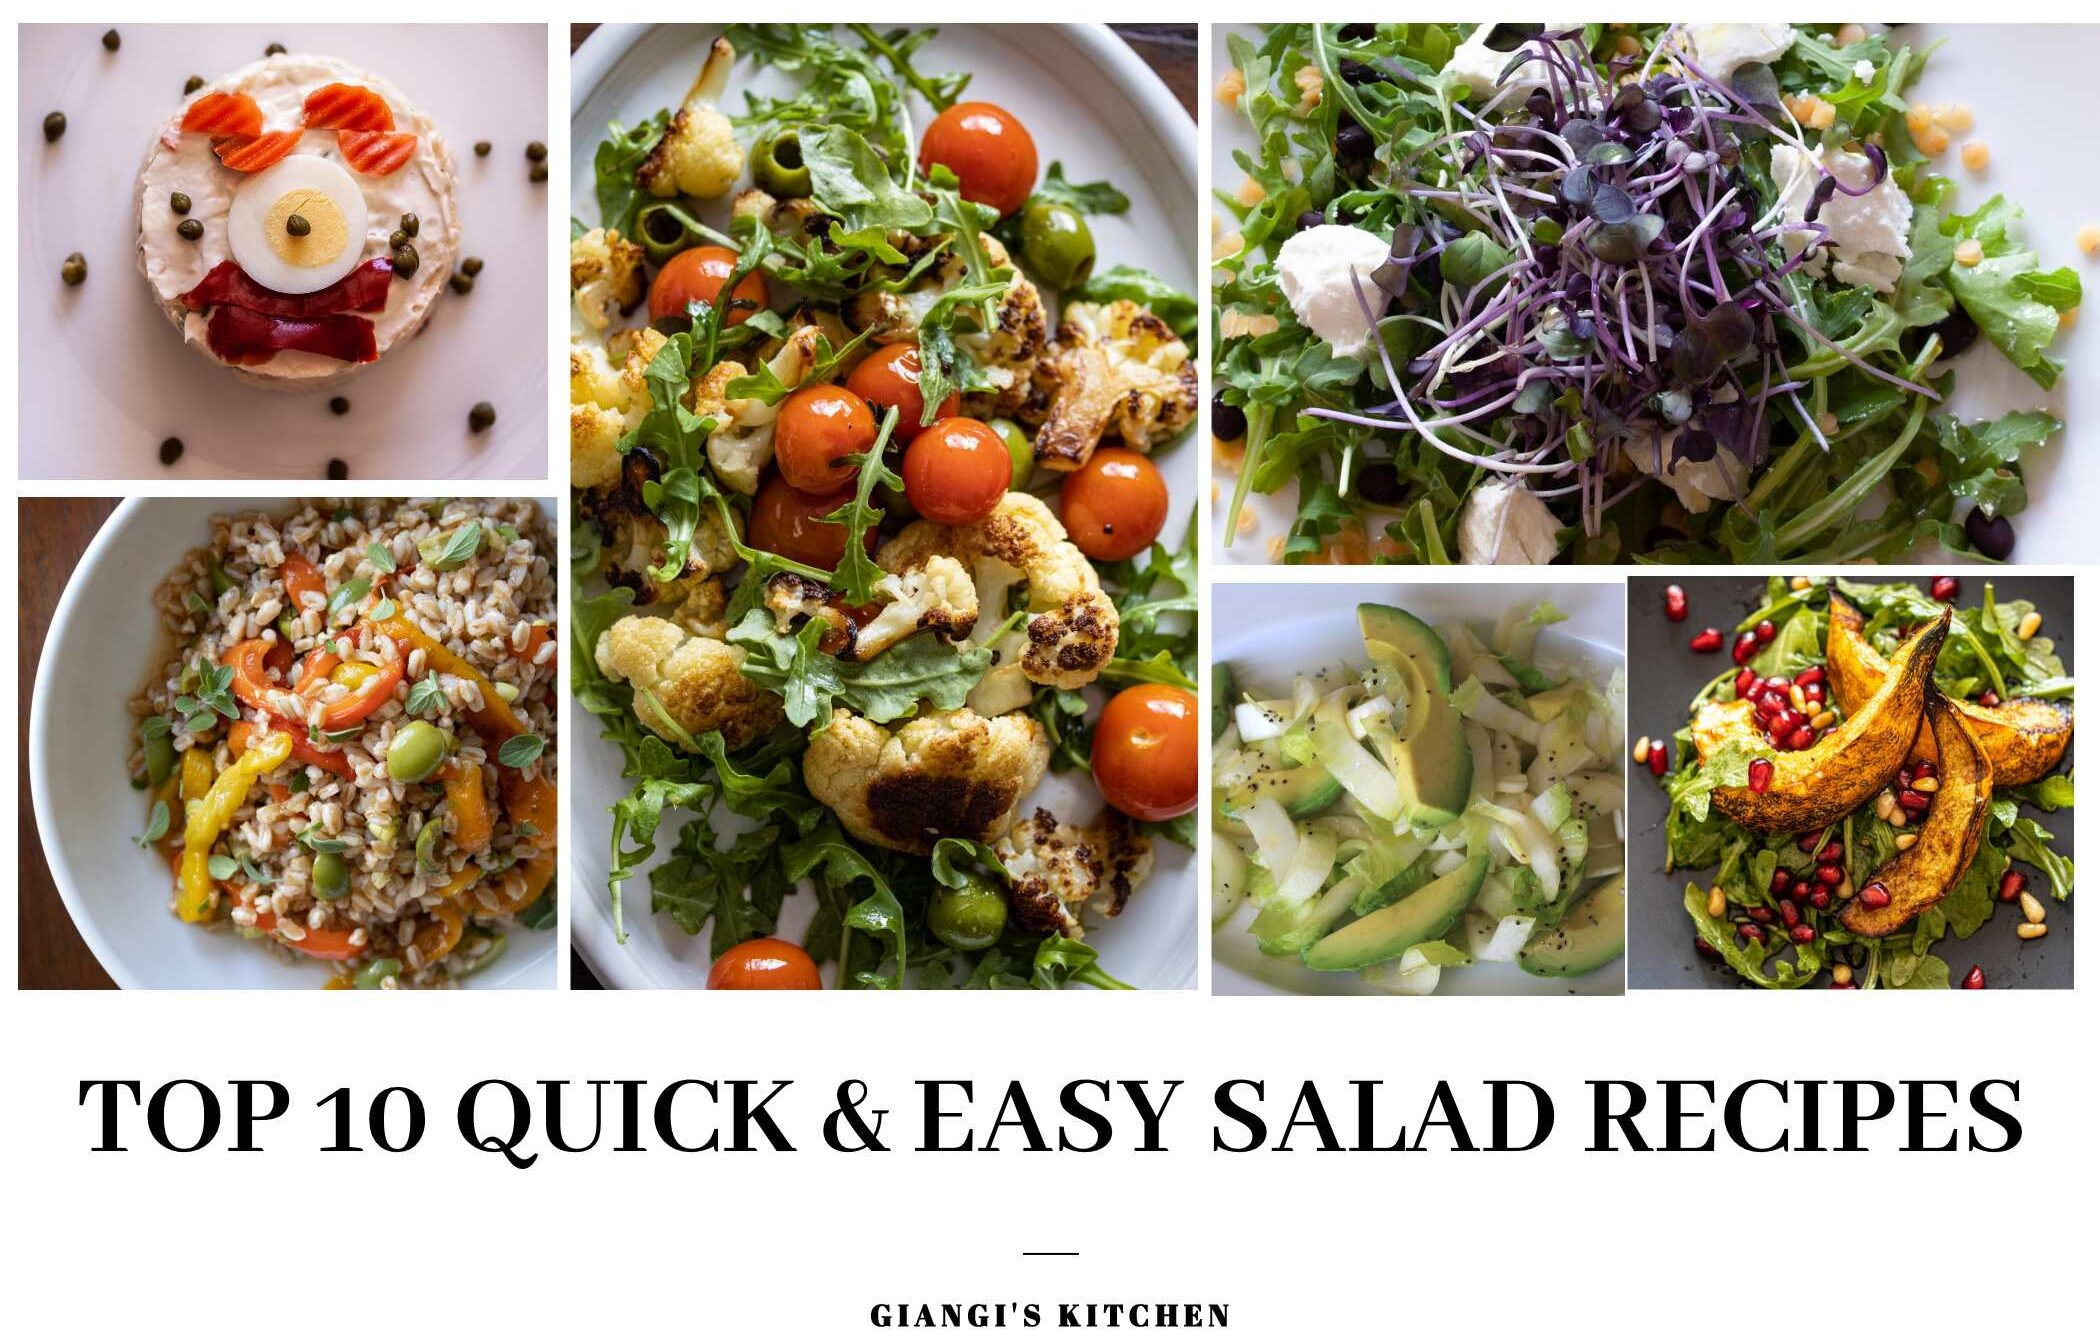 top 10 quick & easy salad recipes